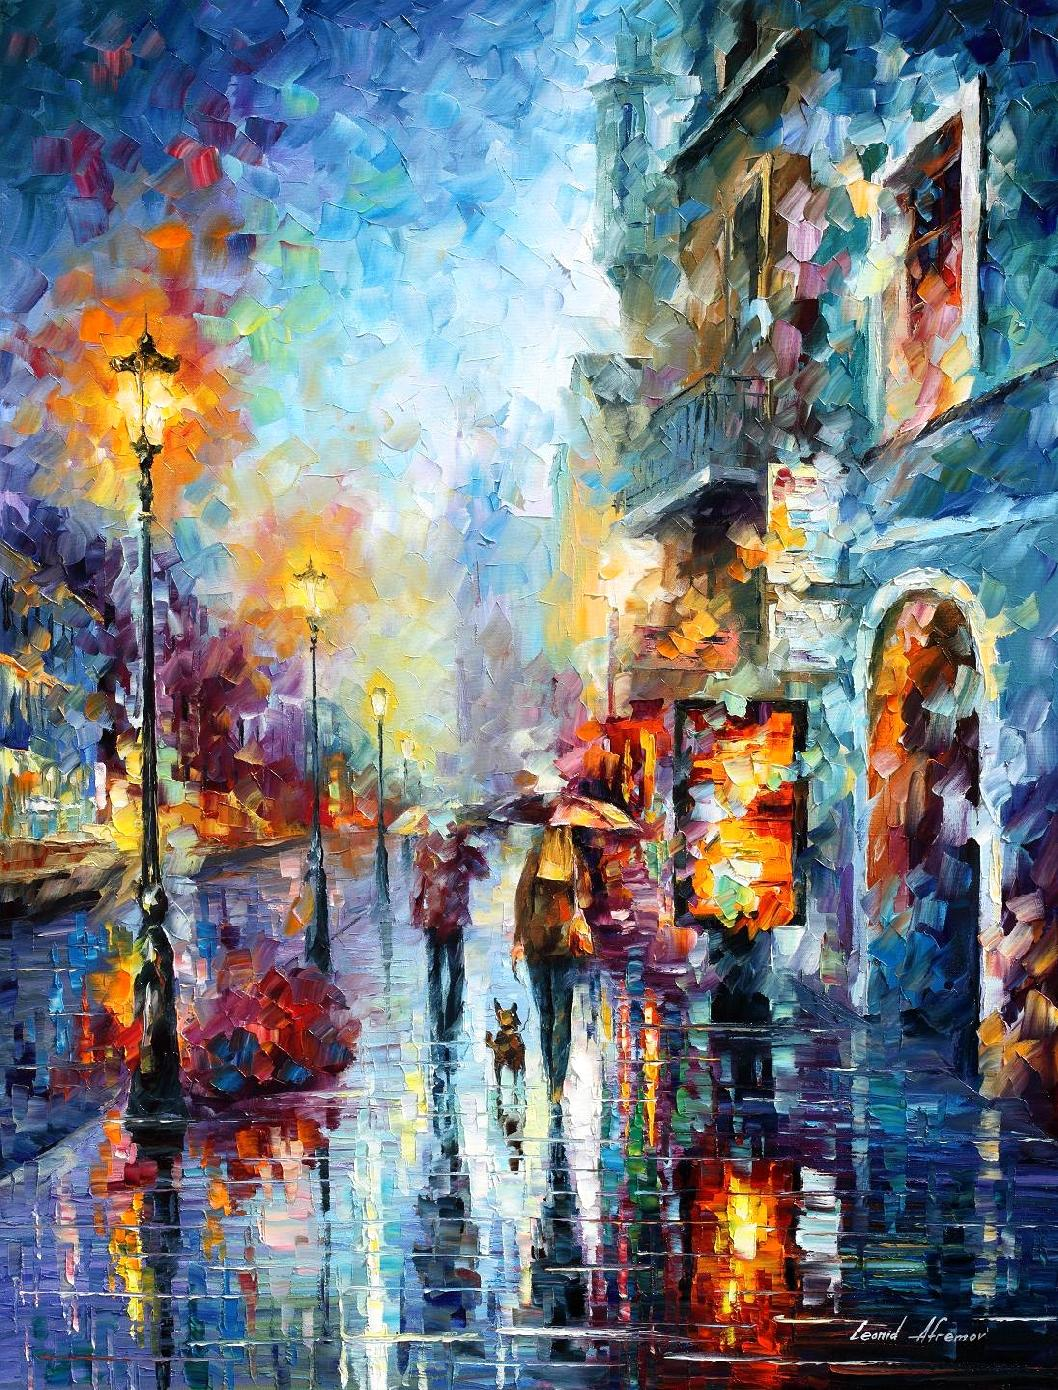 MELODY OF PASSION - Leonid Afremov